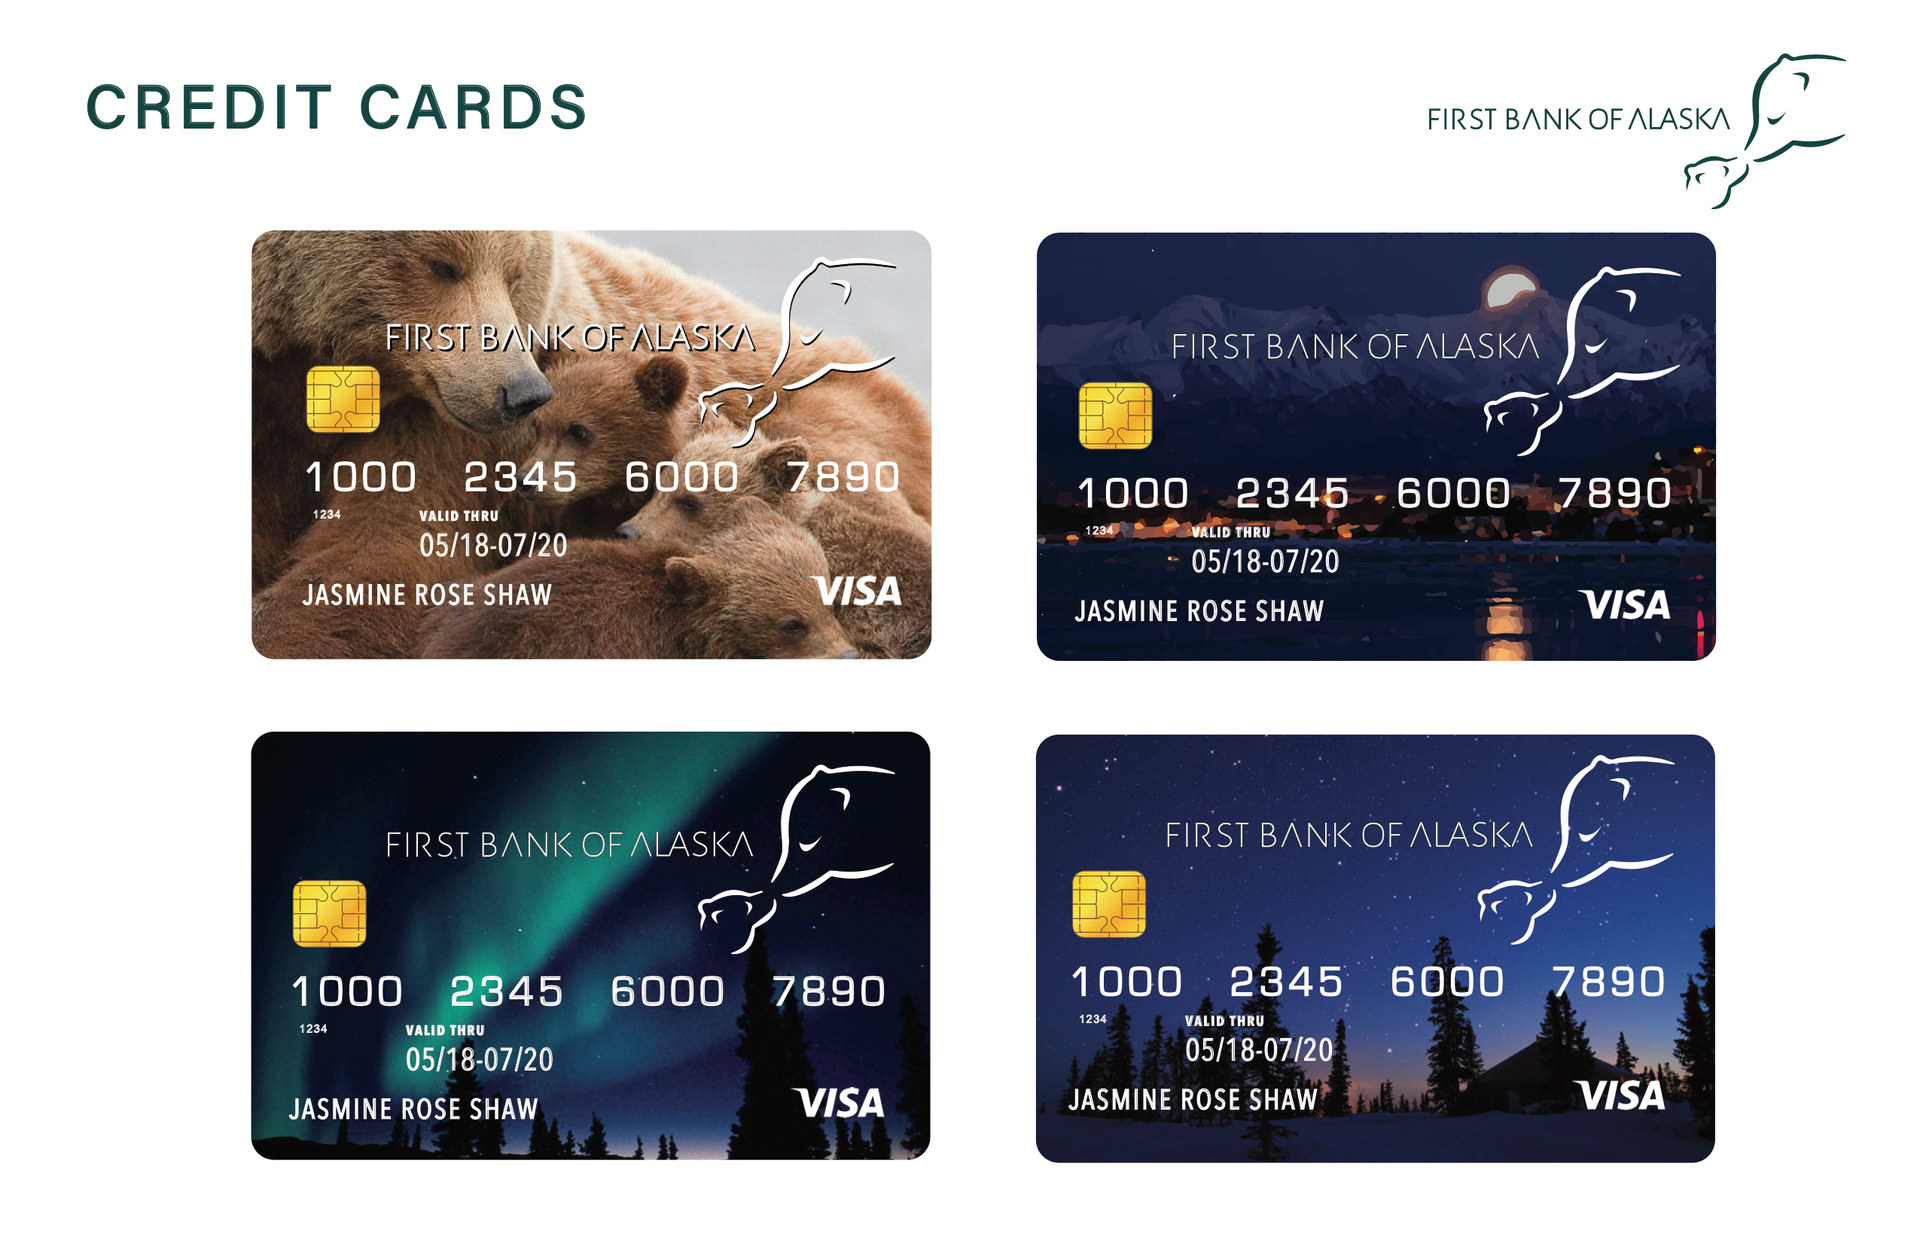 First Bank of Alaska Credi Cards